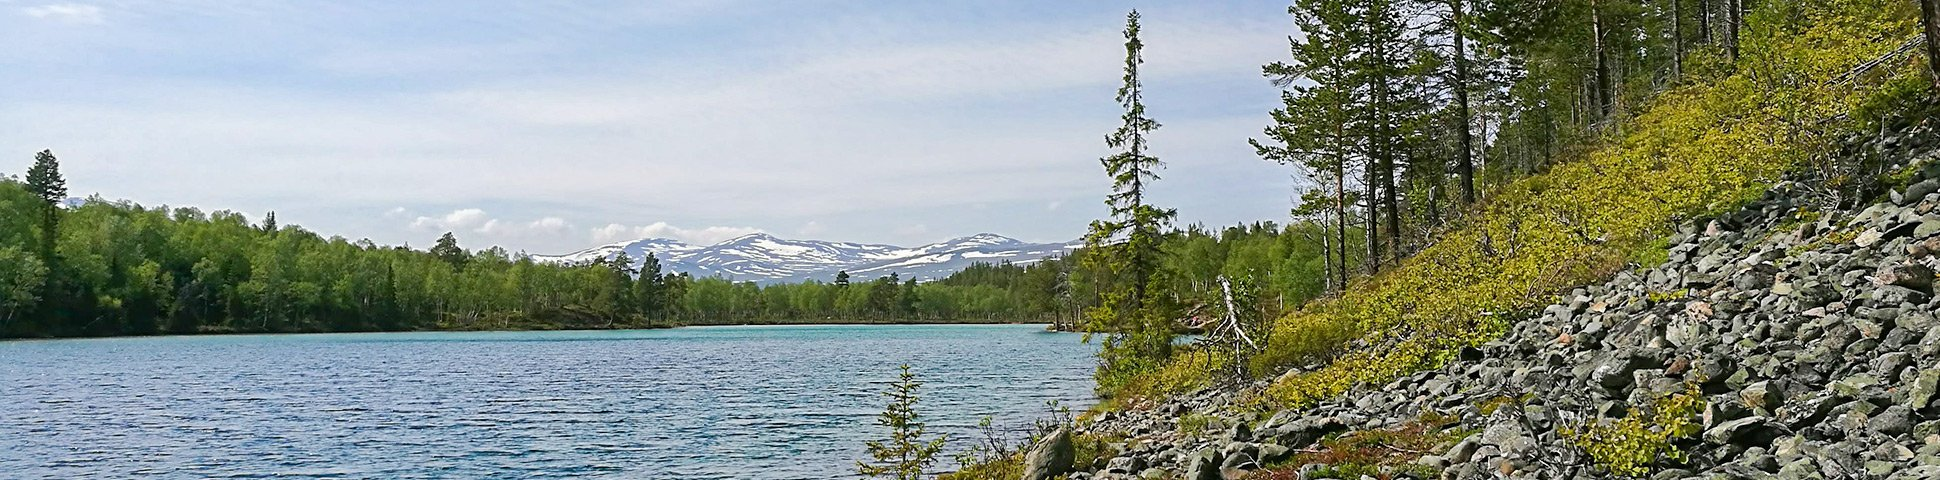 Panorama of Blanktjärnsrundan hike in Åre, Sweden